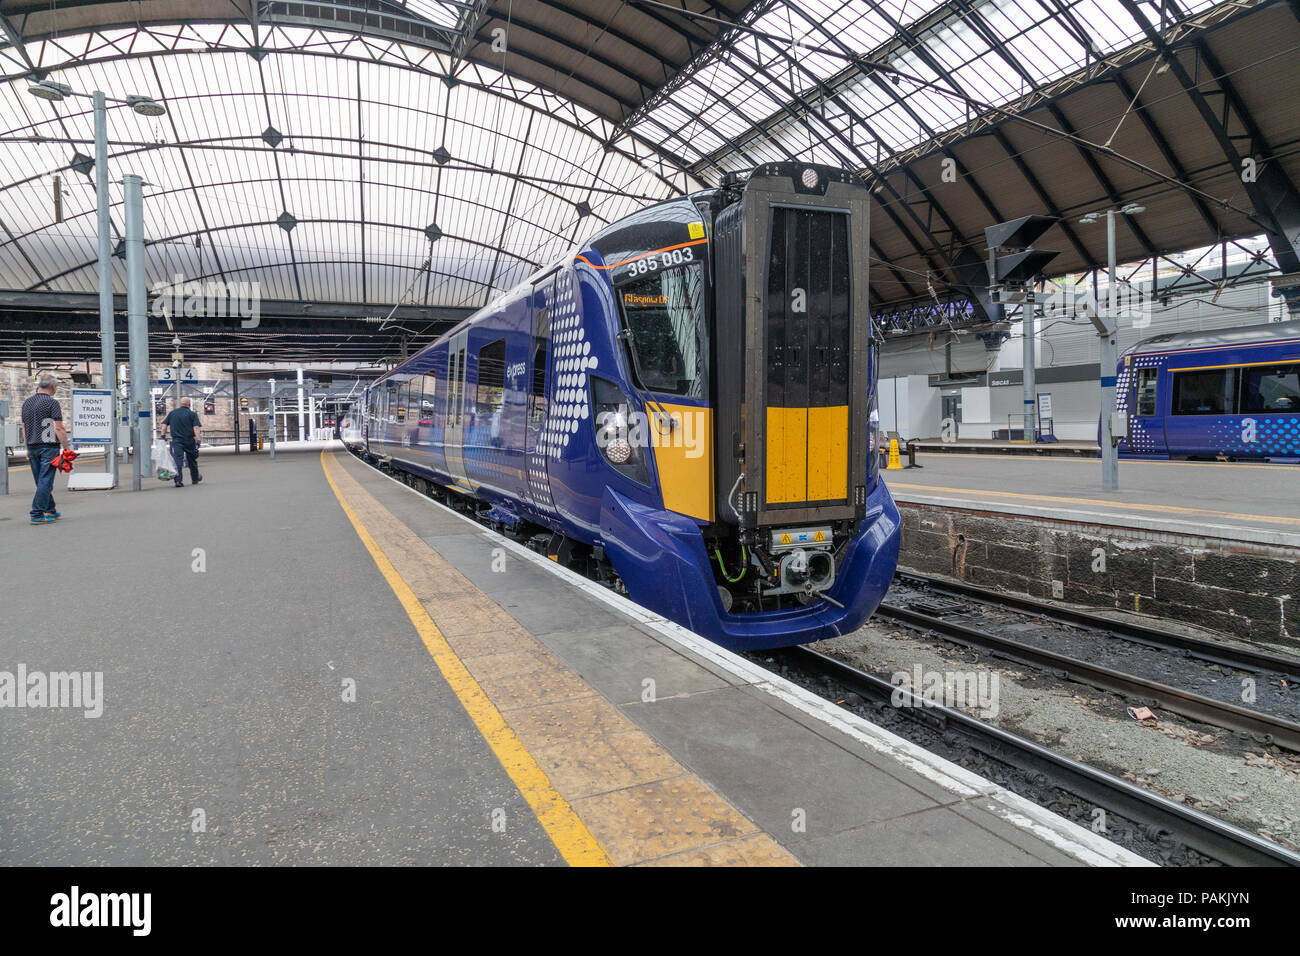 Scotrails brand new Class 385 train at Glasgow Queen Street Station make their debut journey carrying passengers. - Stock Image